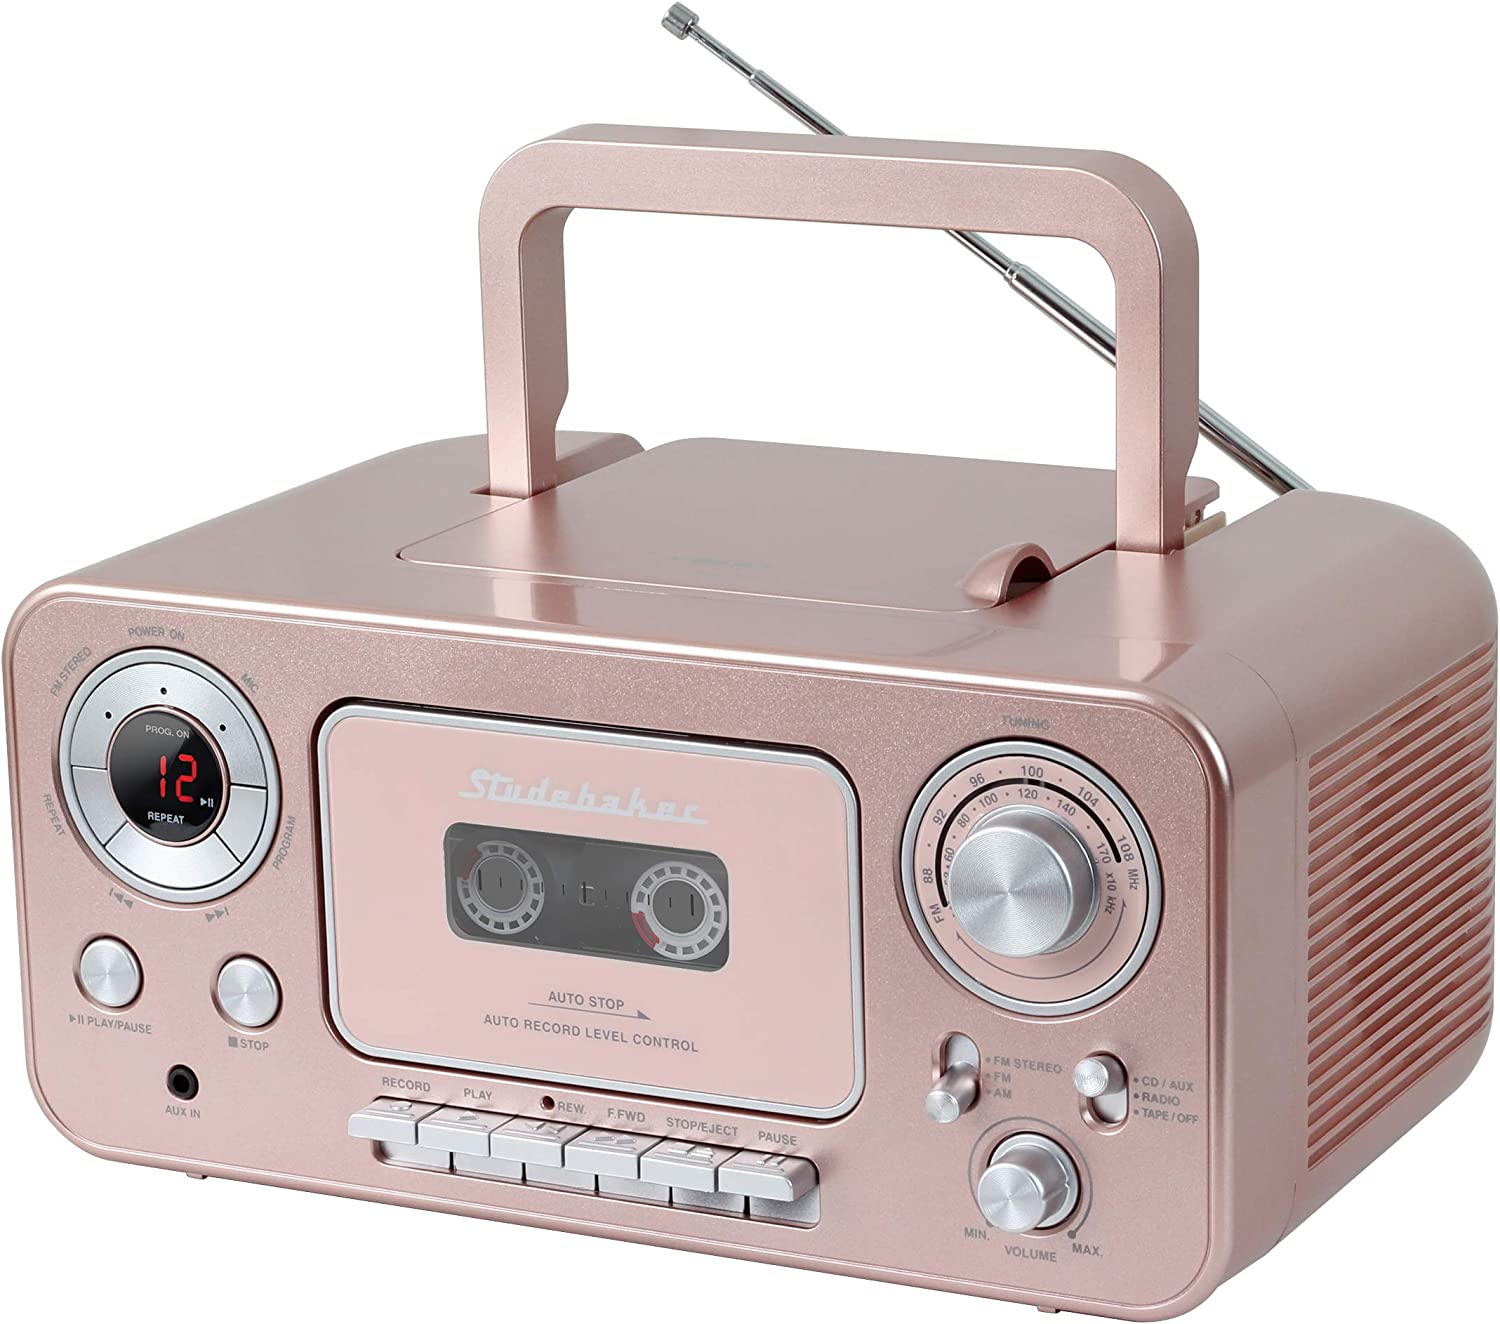 Studebaker SB2135RG Portable Stereo CD Player with AM/FM Radio and Cassette Player/Recorder in Rose Gold